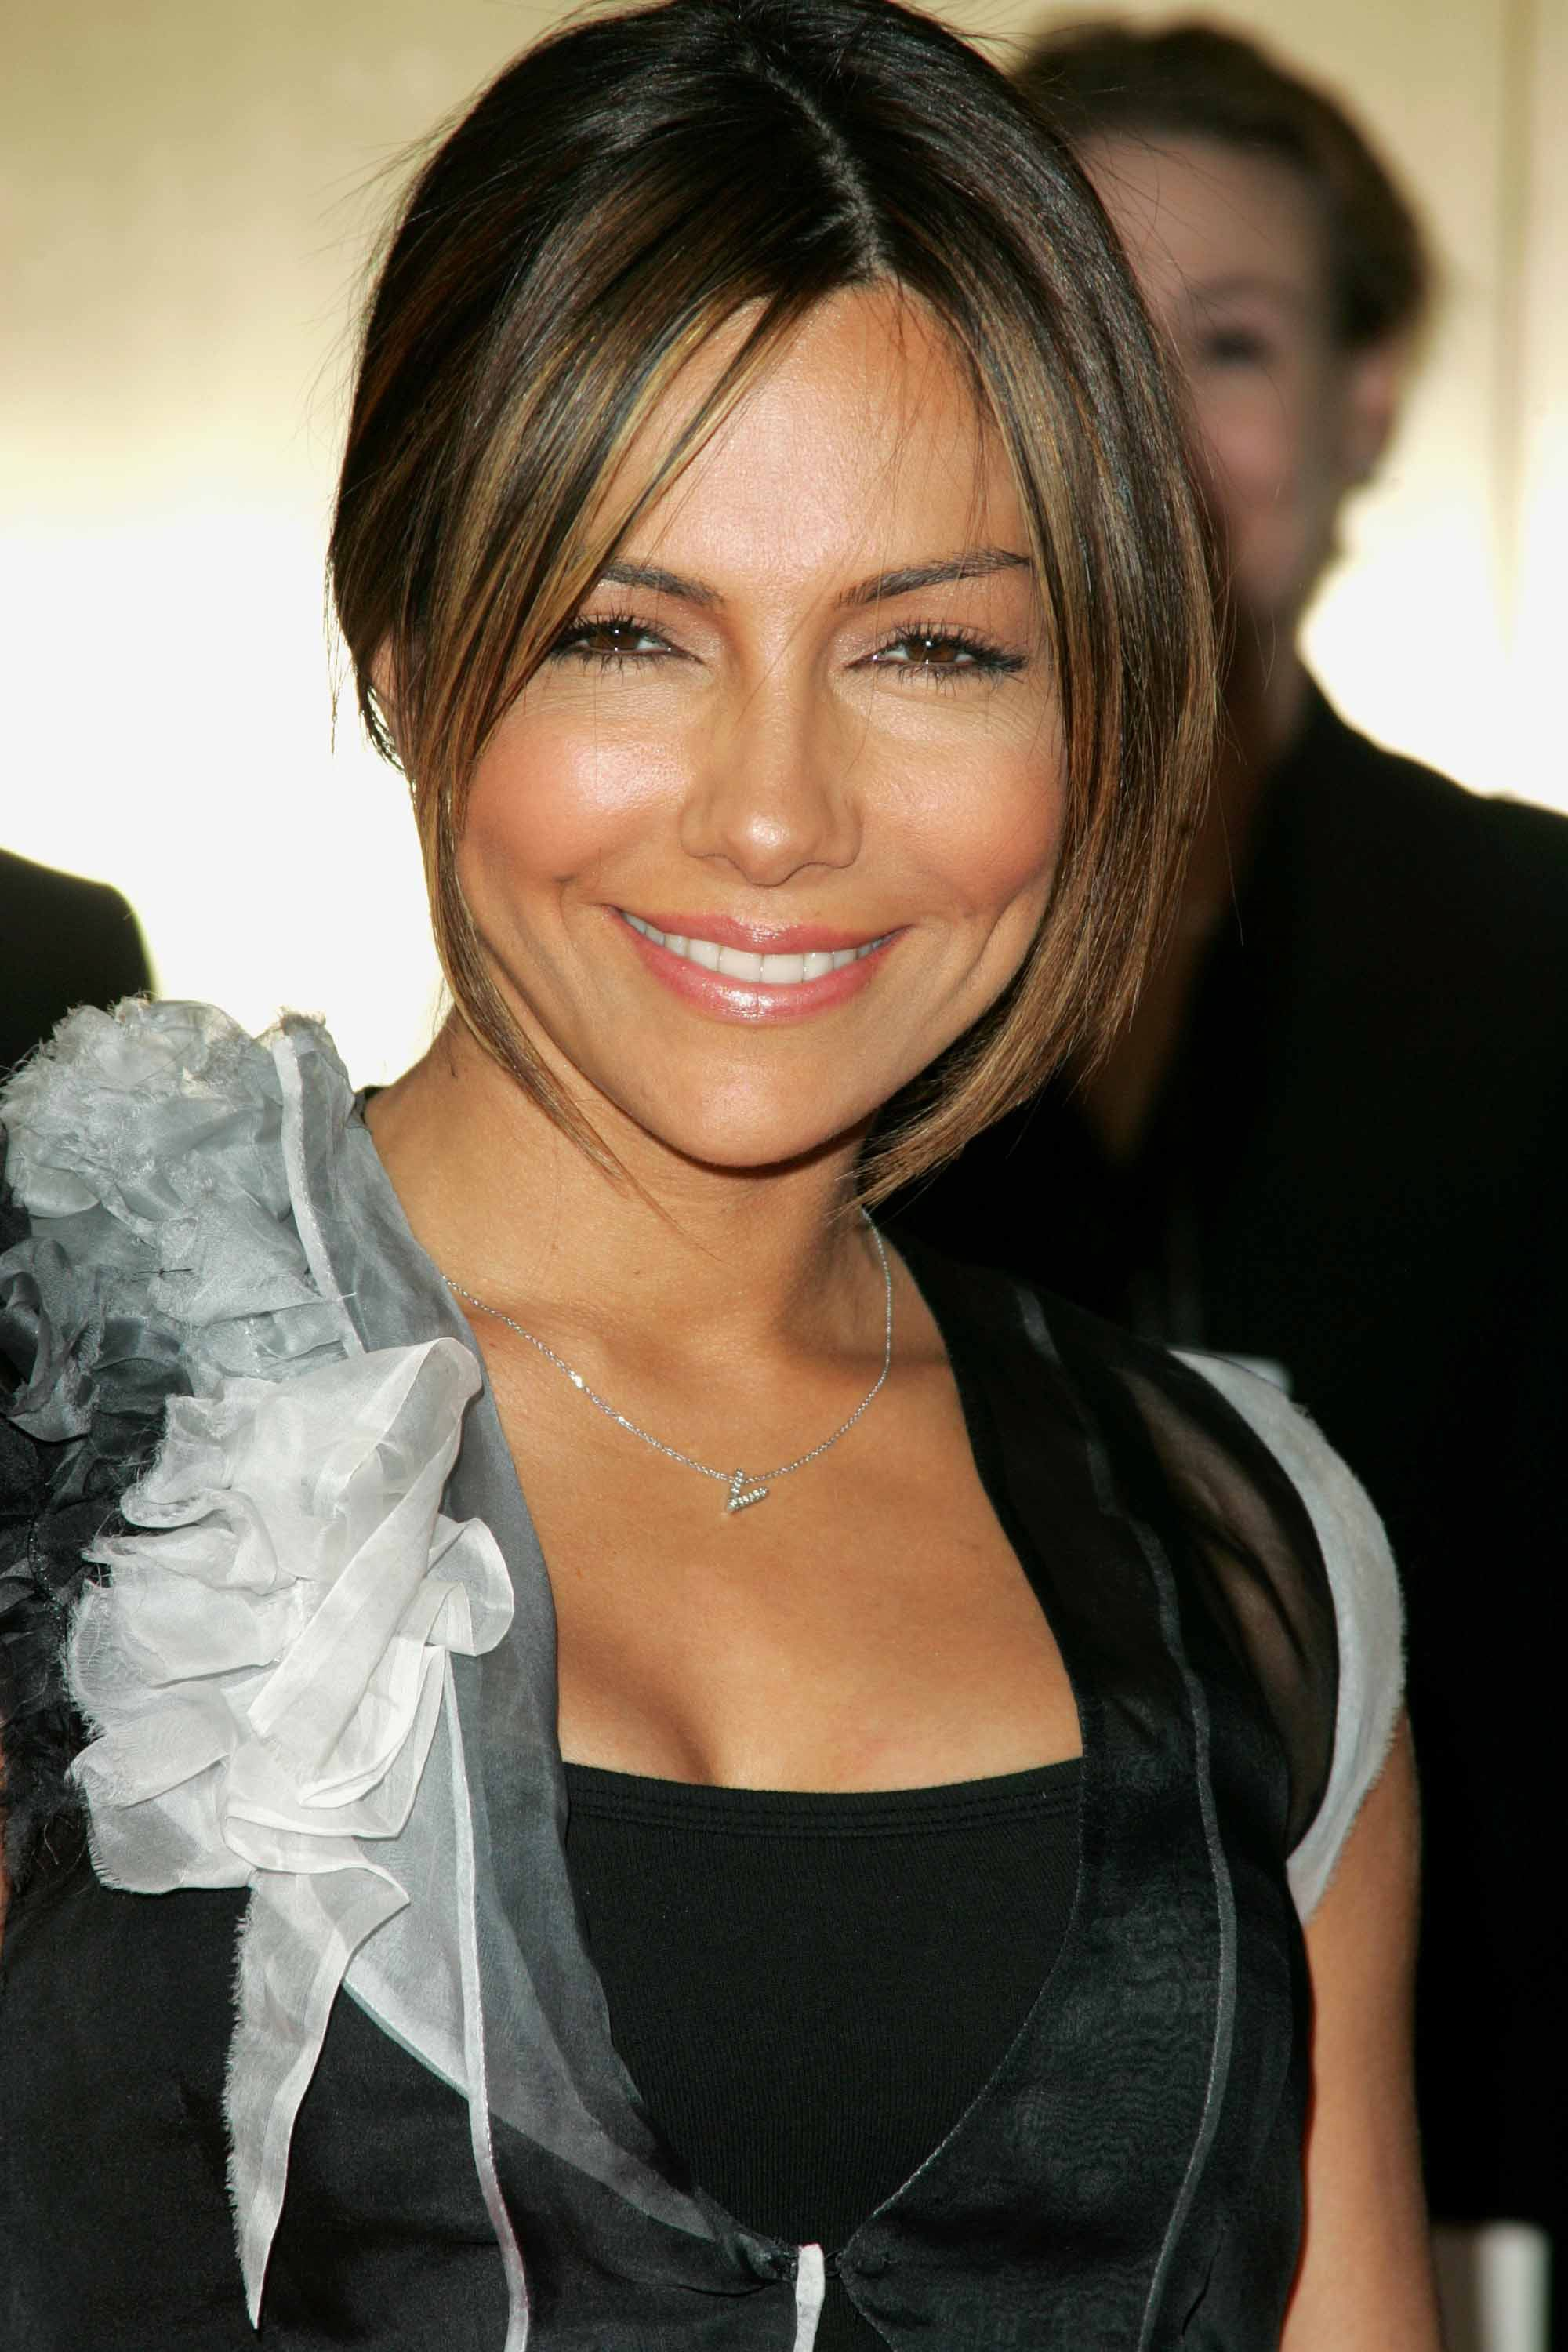 Sorry, that vanessa marcil general hospital